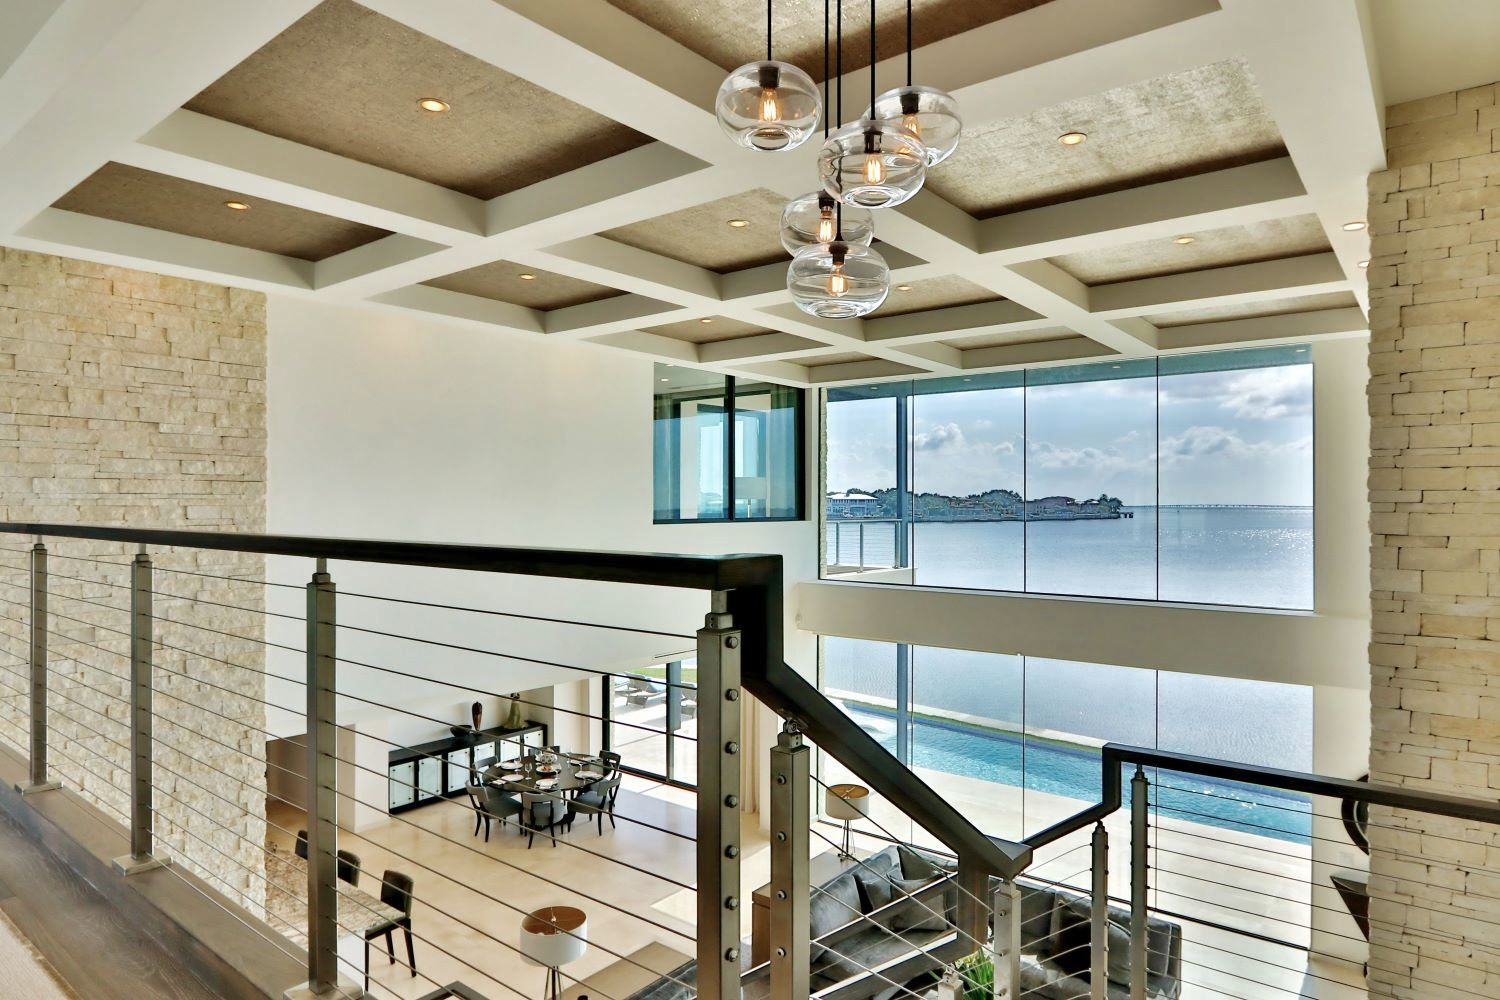 https://0201.nccdn.net/4_2/000/000/076/de9/waterfront-contemporary-home--10-.jpg